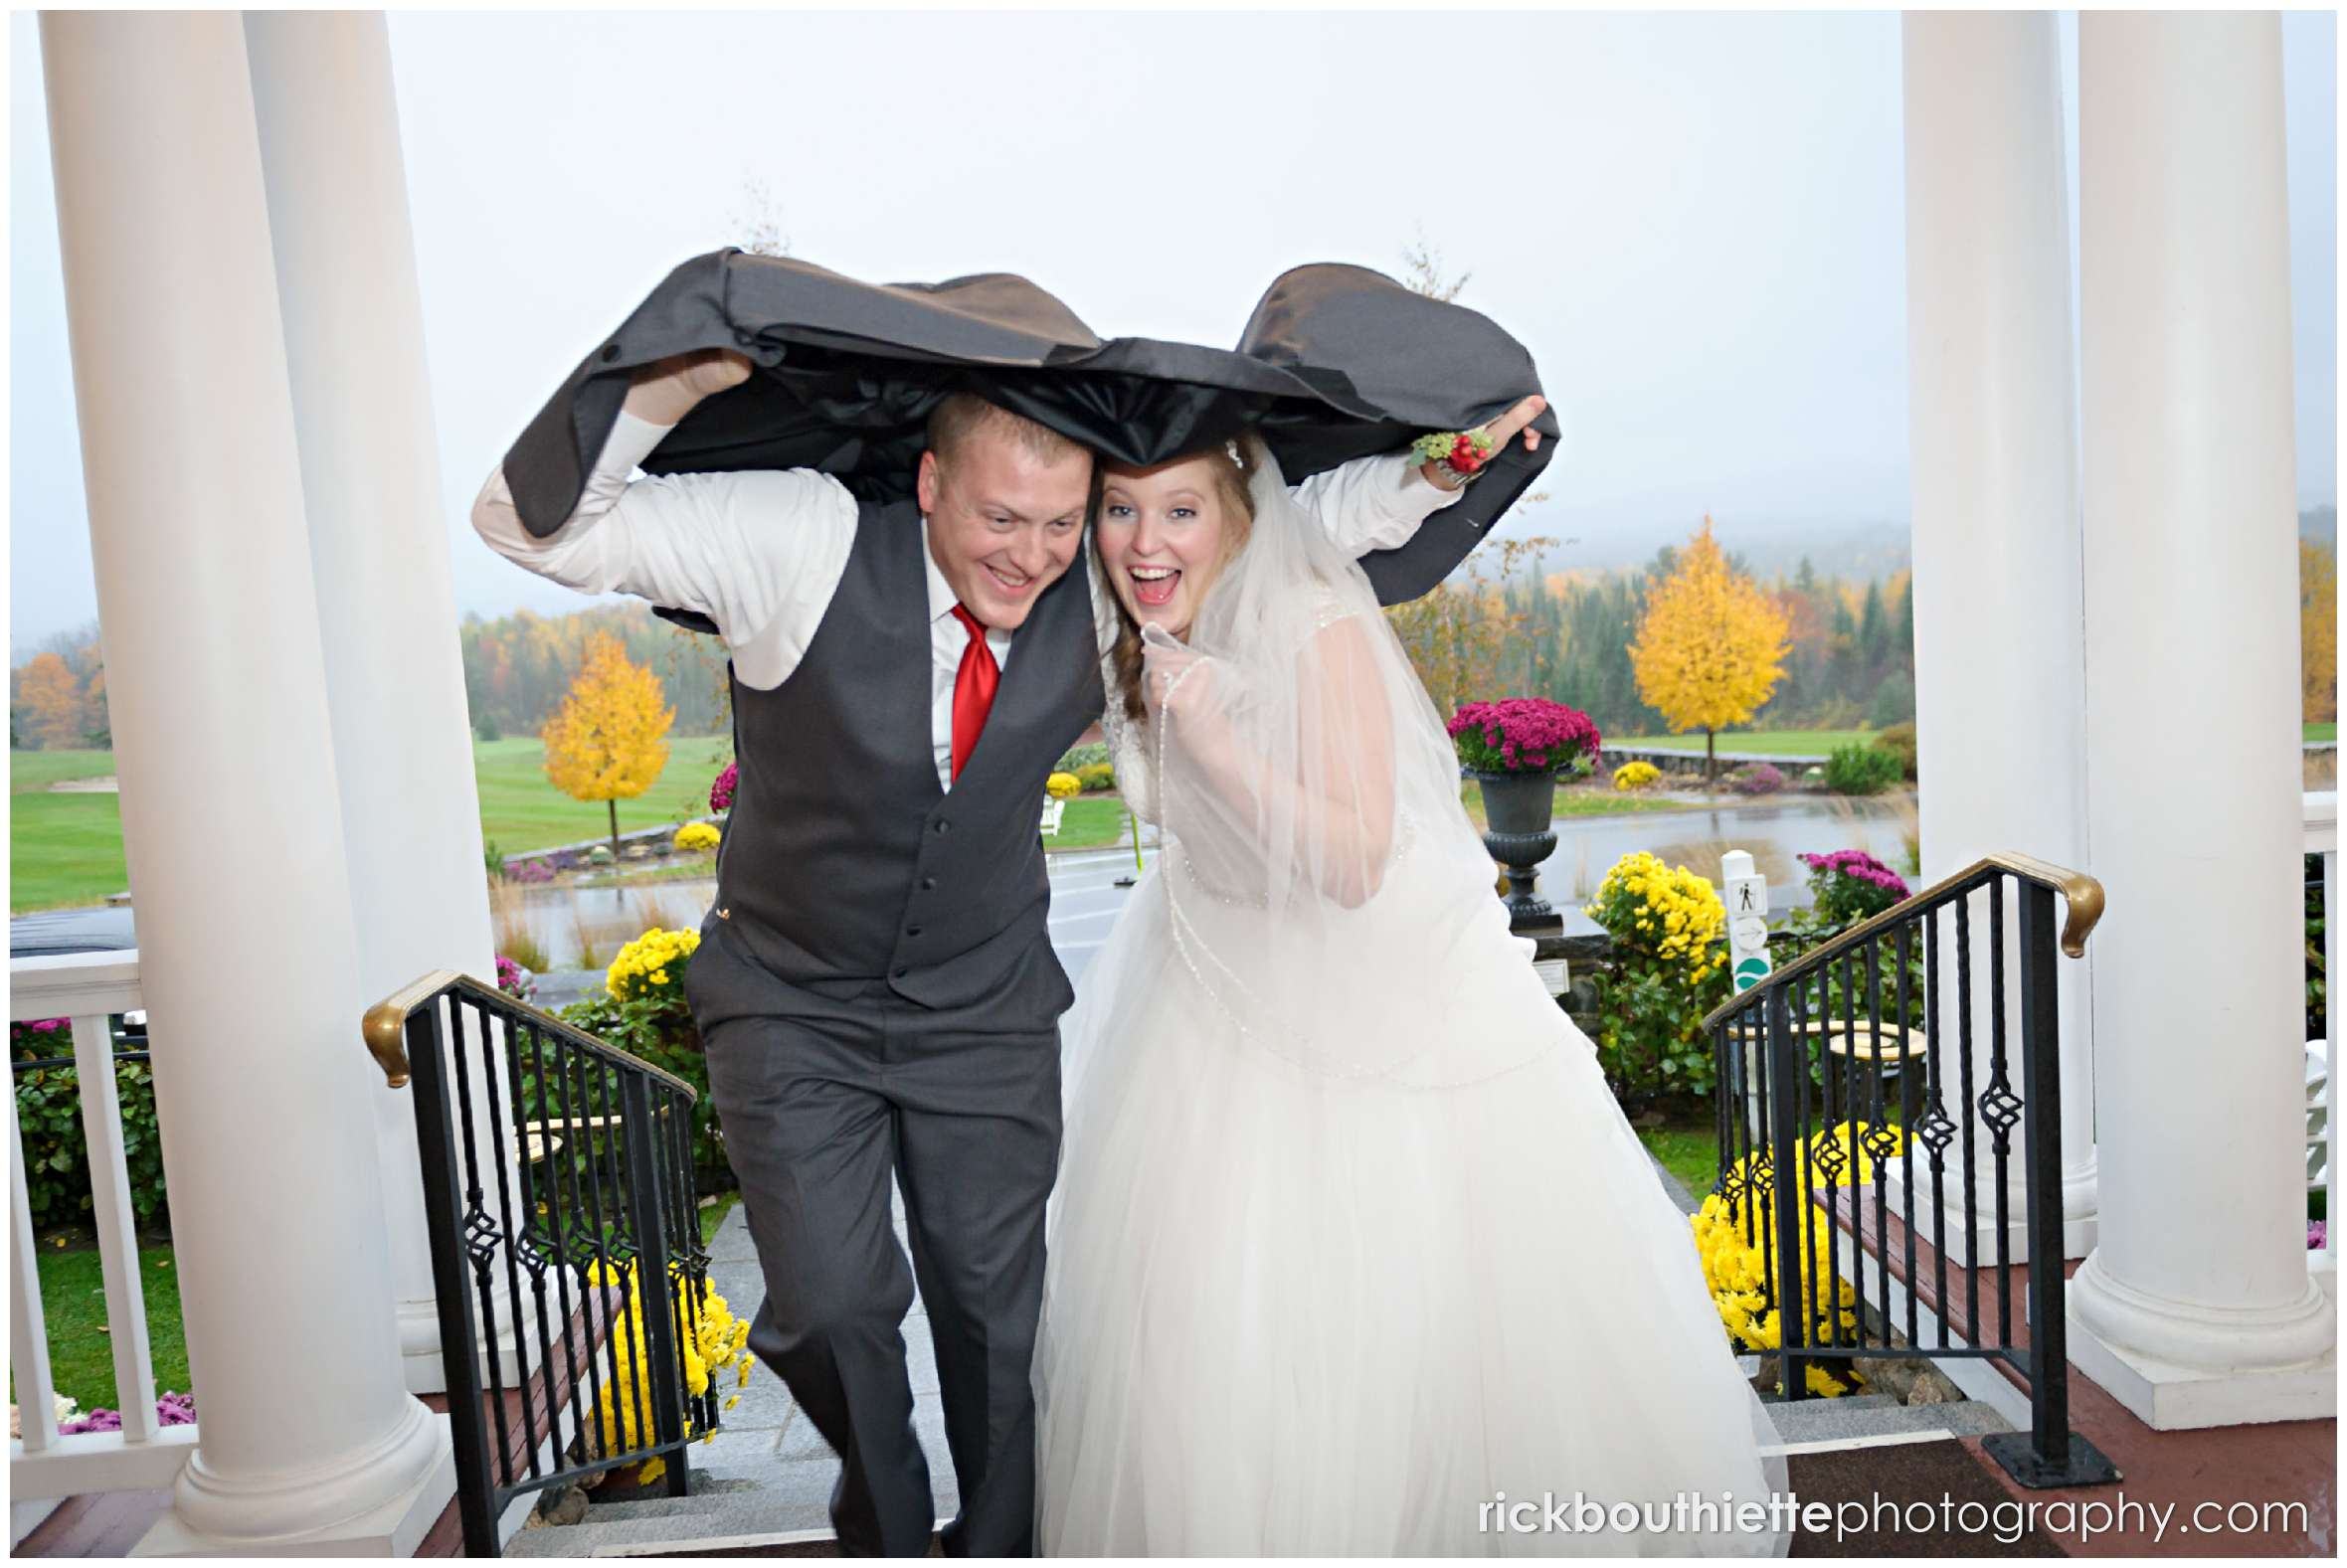 bride and groom running up stairs with jacket overhead in rain